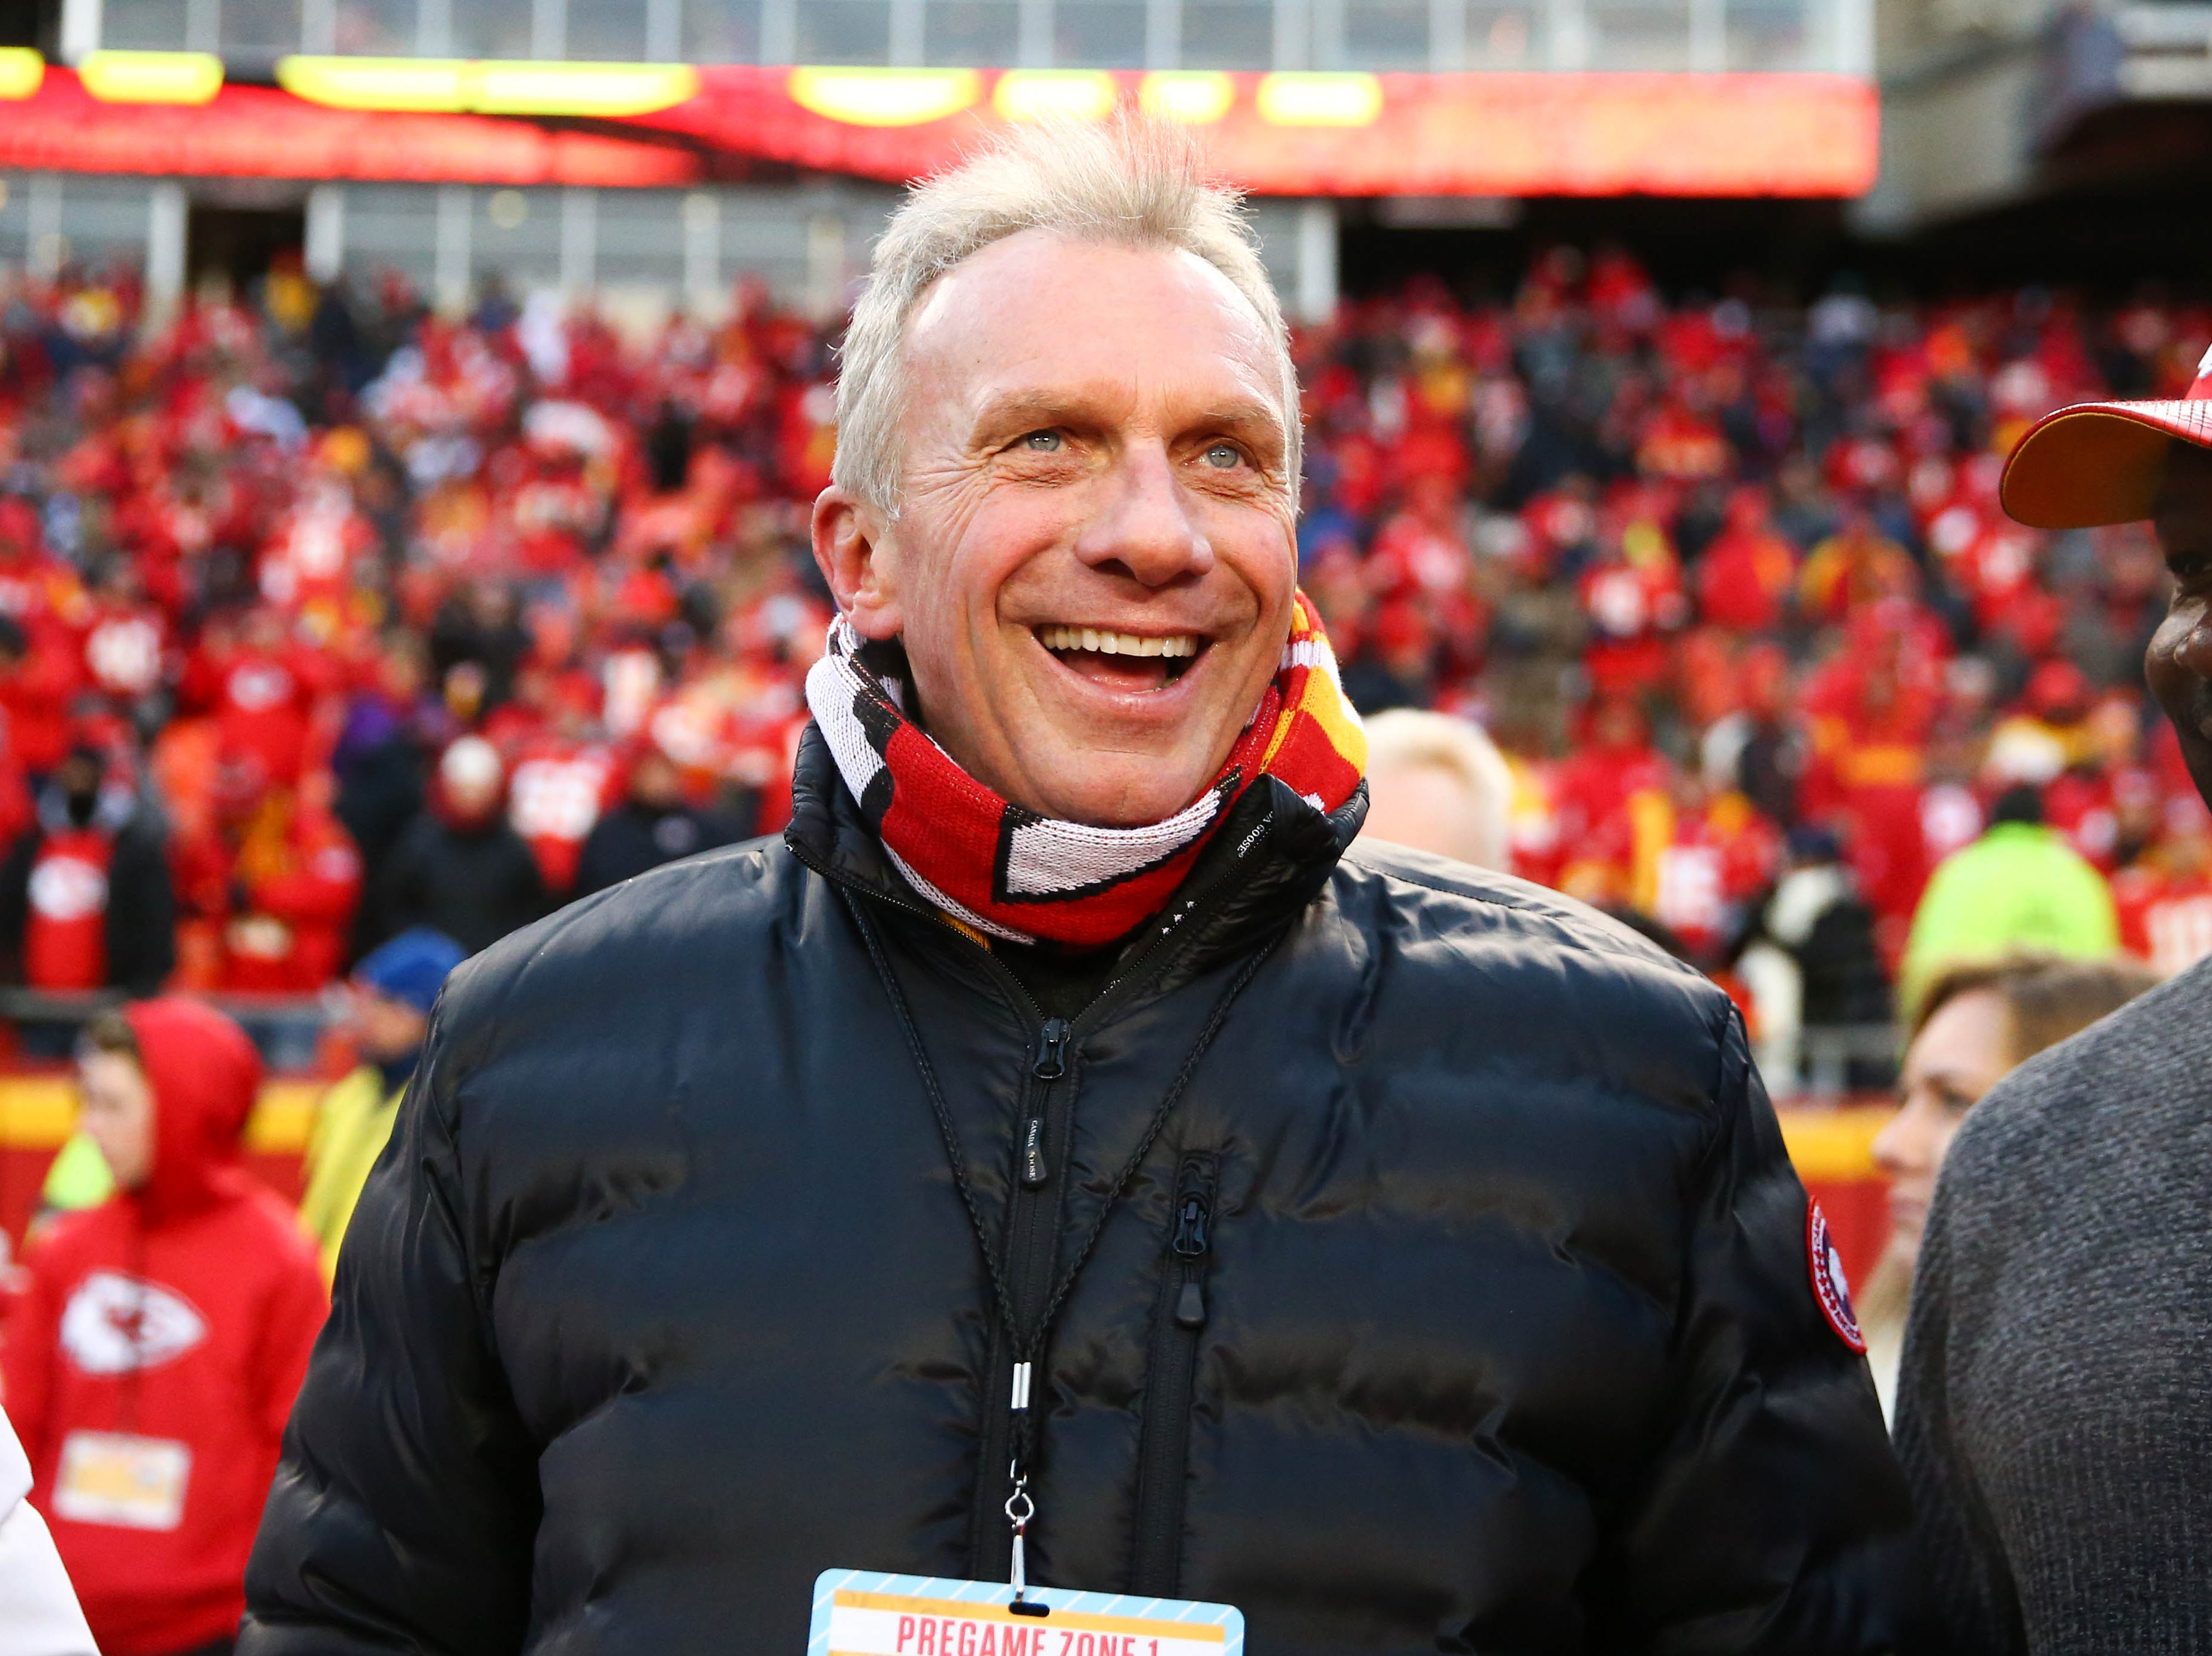 Former Kansas City Chiefs player Joe Montana stands on the sidelines before the AFC Championship Game.